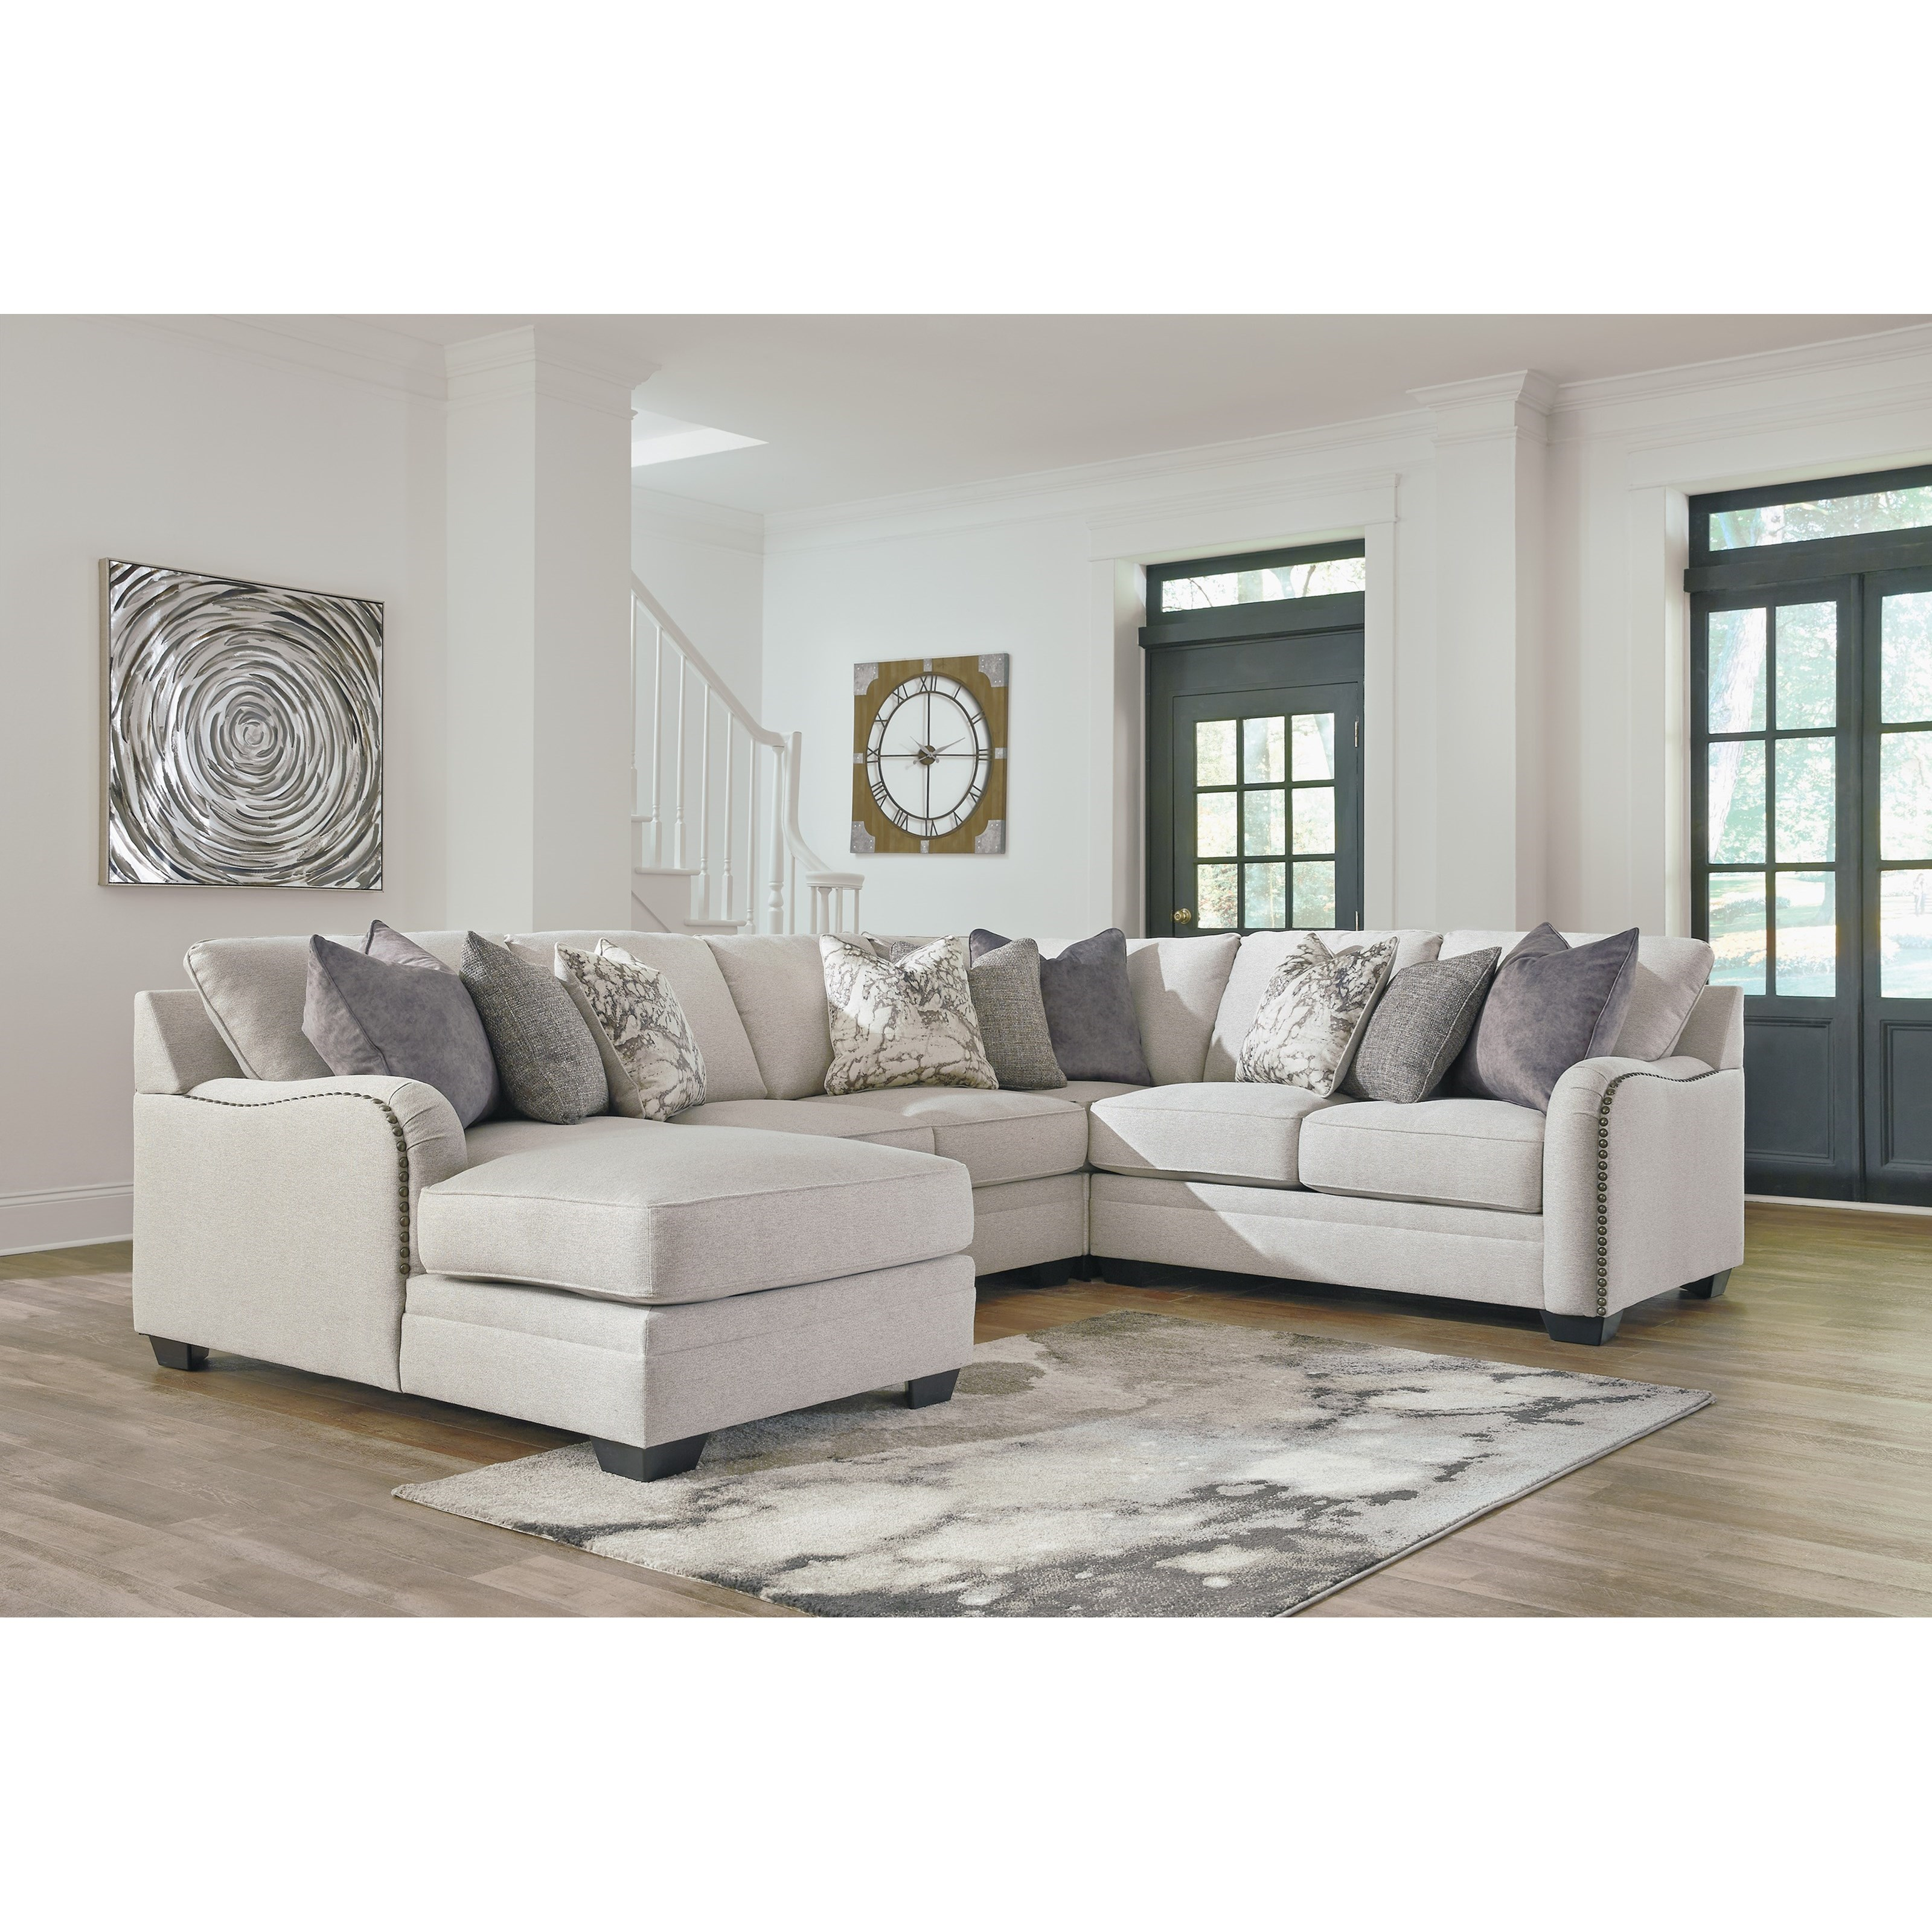 Dellara 4-Piece Sectional by Benchcraft at Beck's Furniture